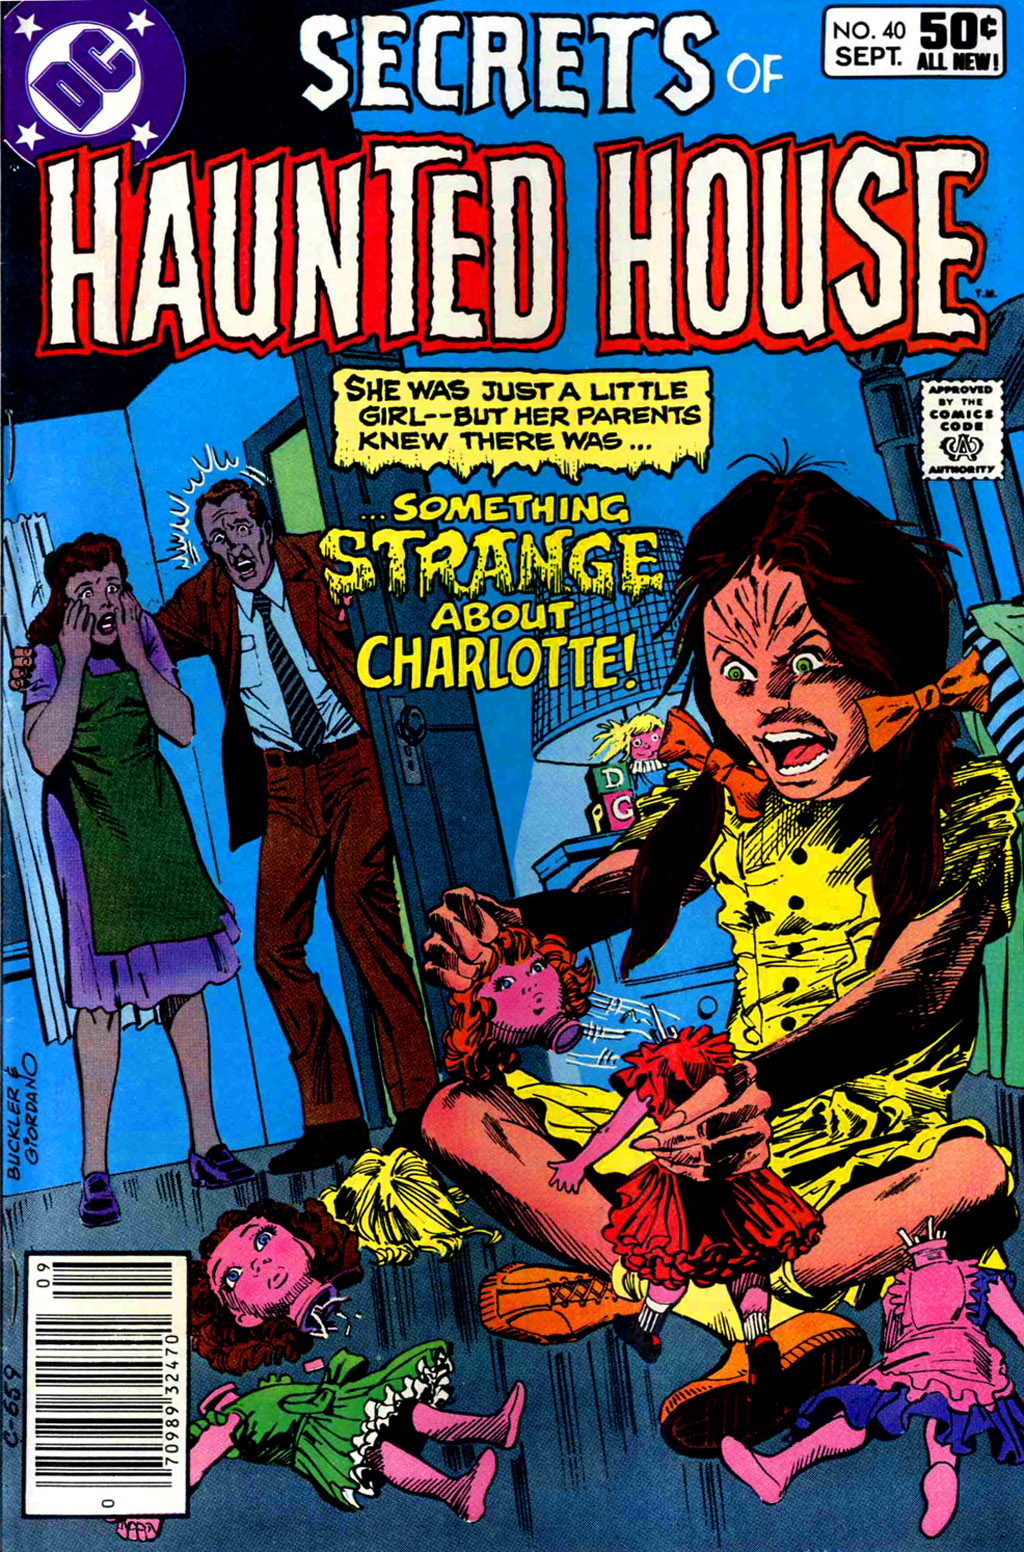 Read online Secrets of Haunted House comic -  Issue #40 - 1